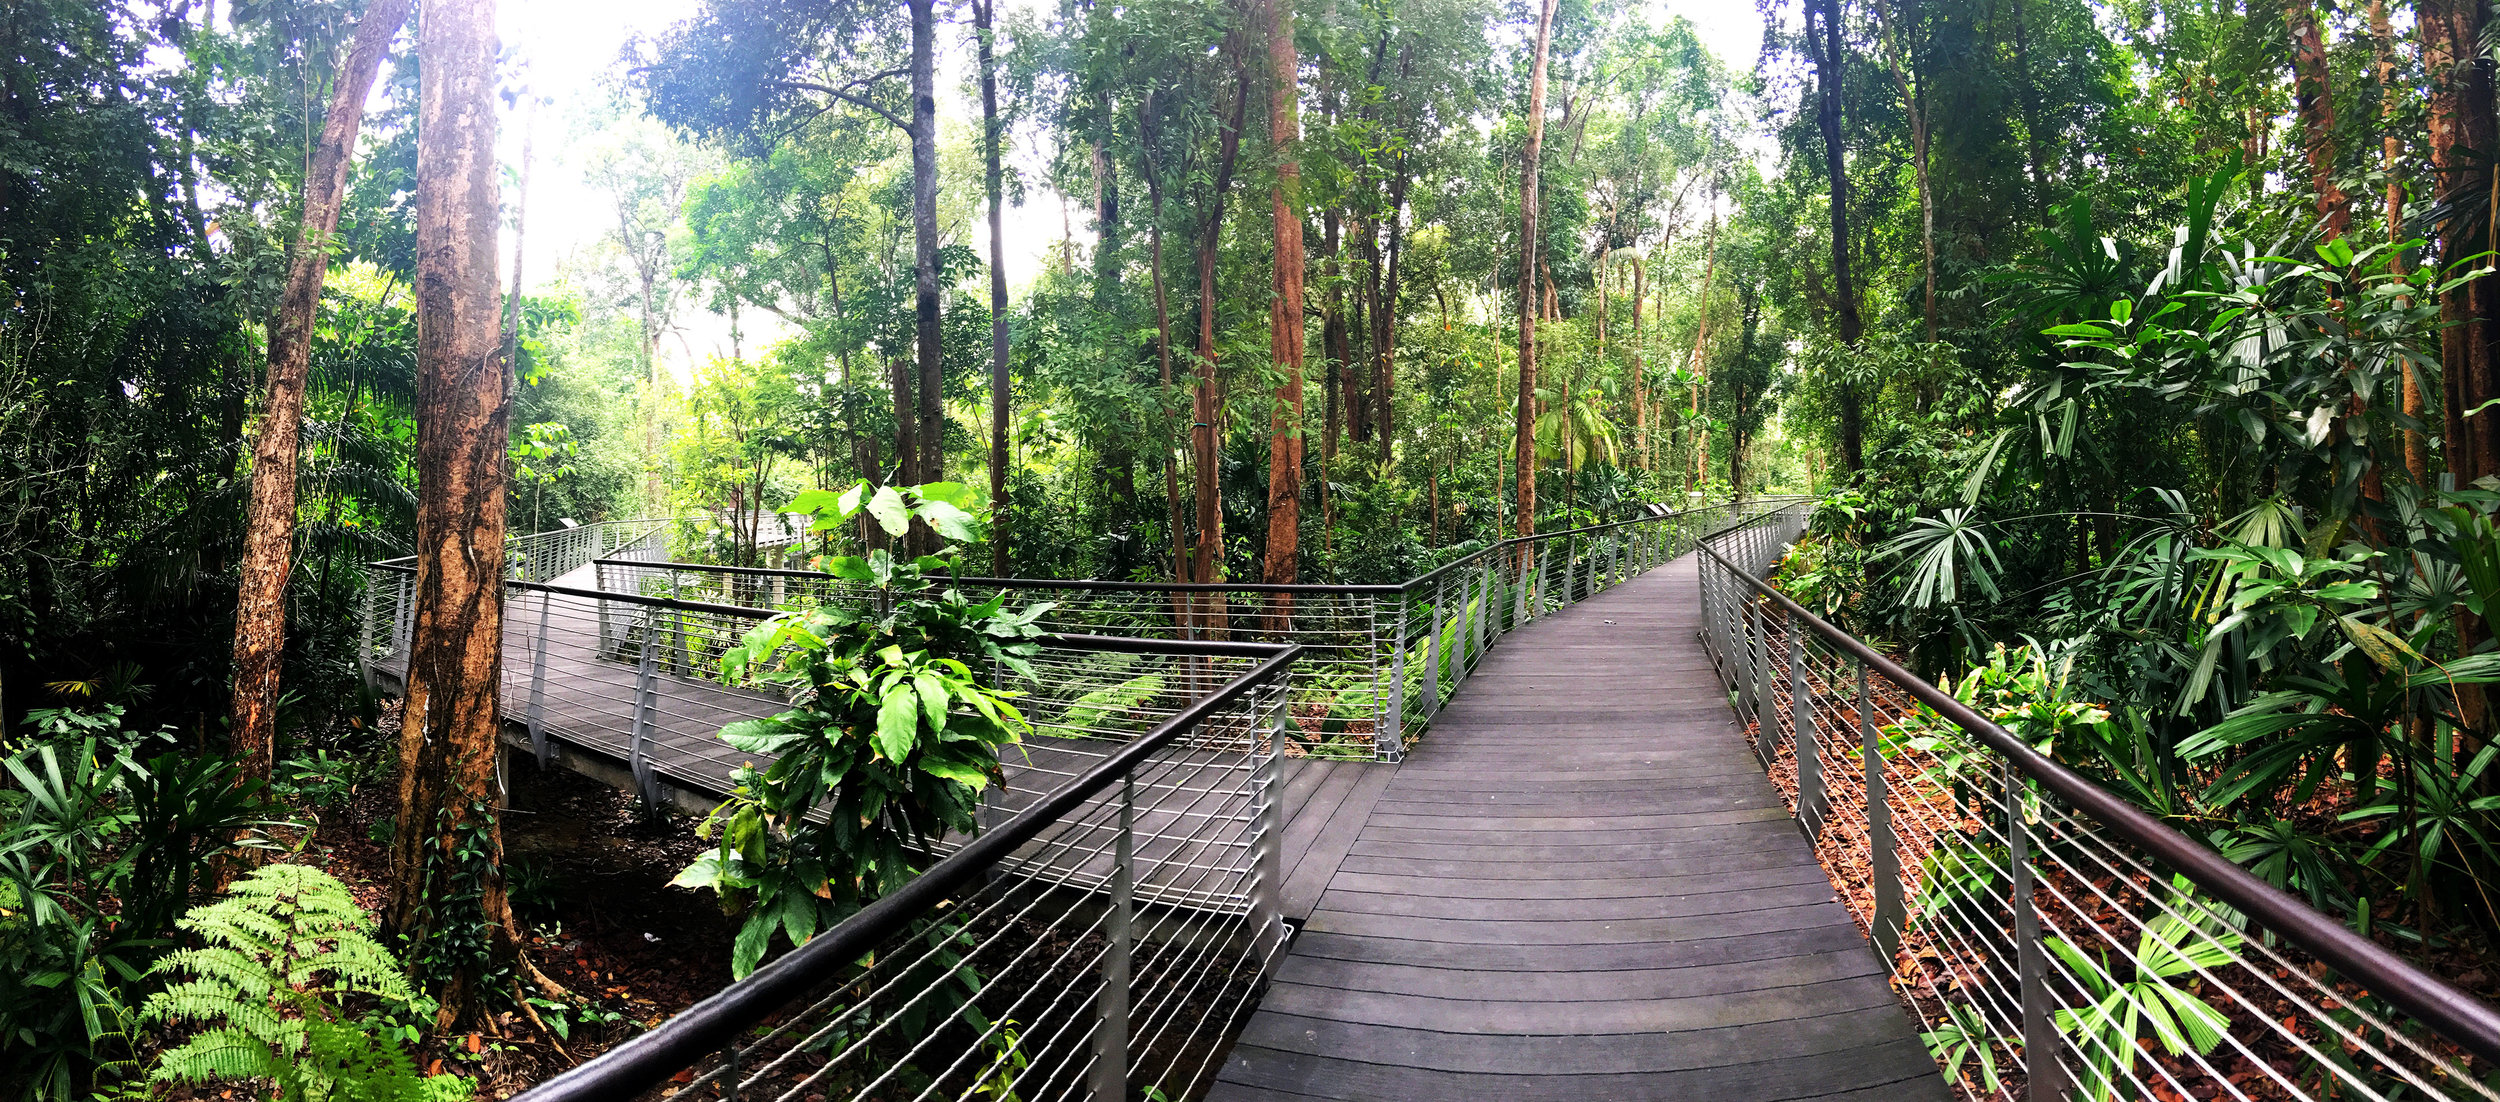 SPH Walk of Giants canopy walkways through the Learning Forest - Stephen Caffyn Landscape Design